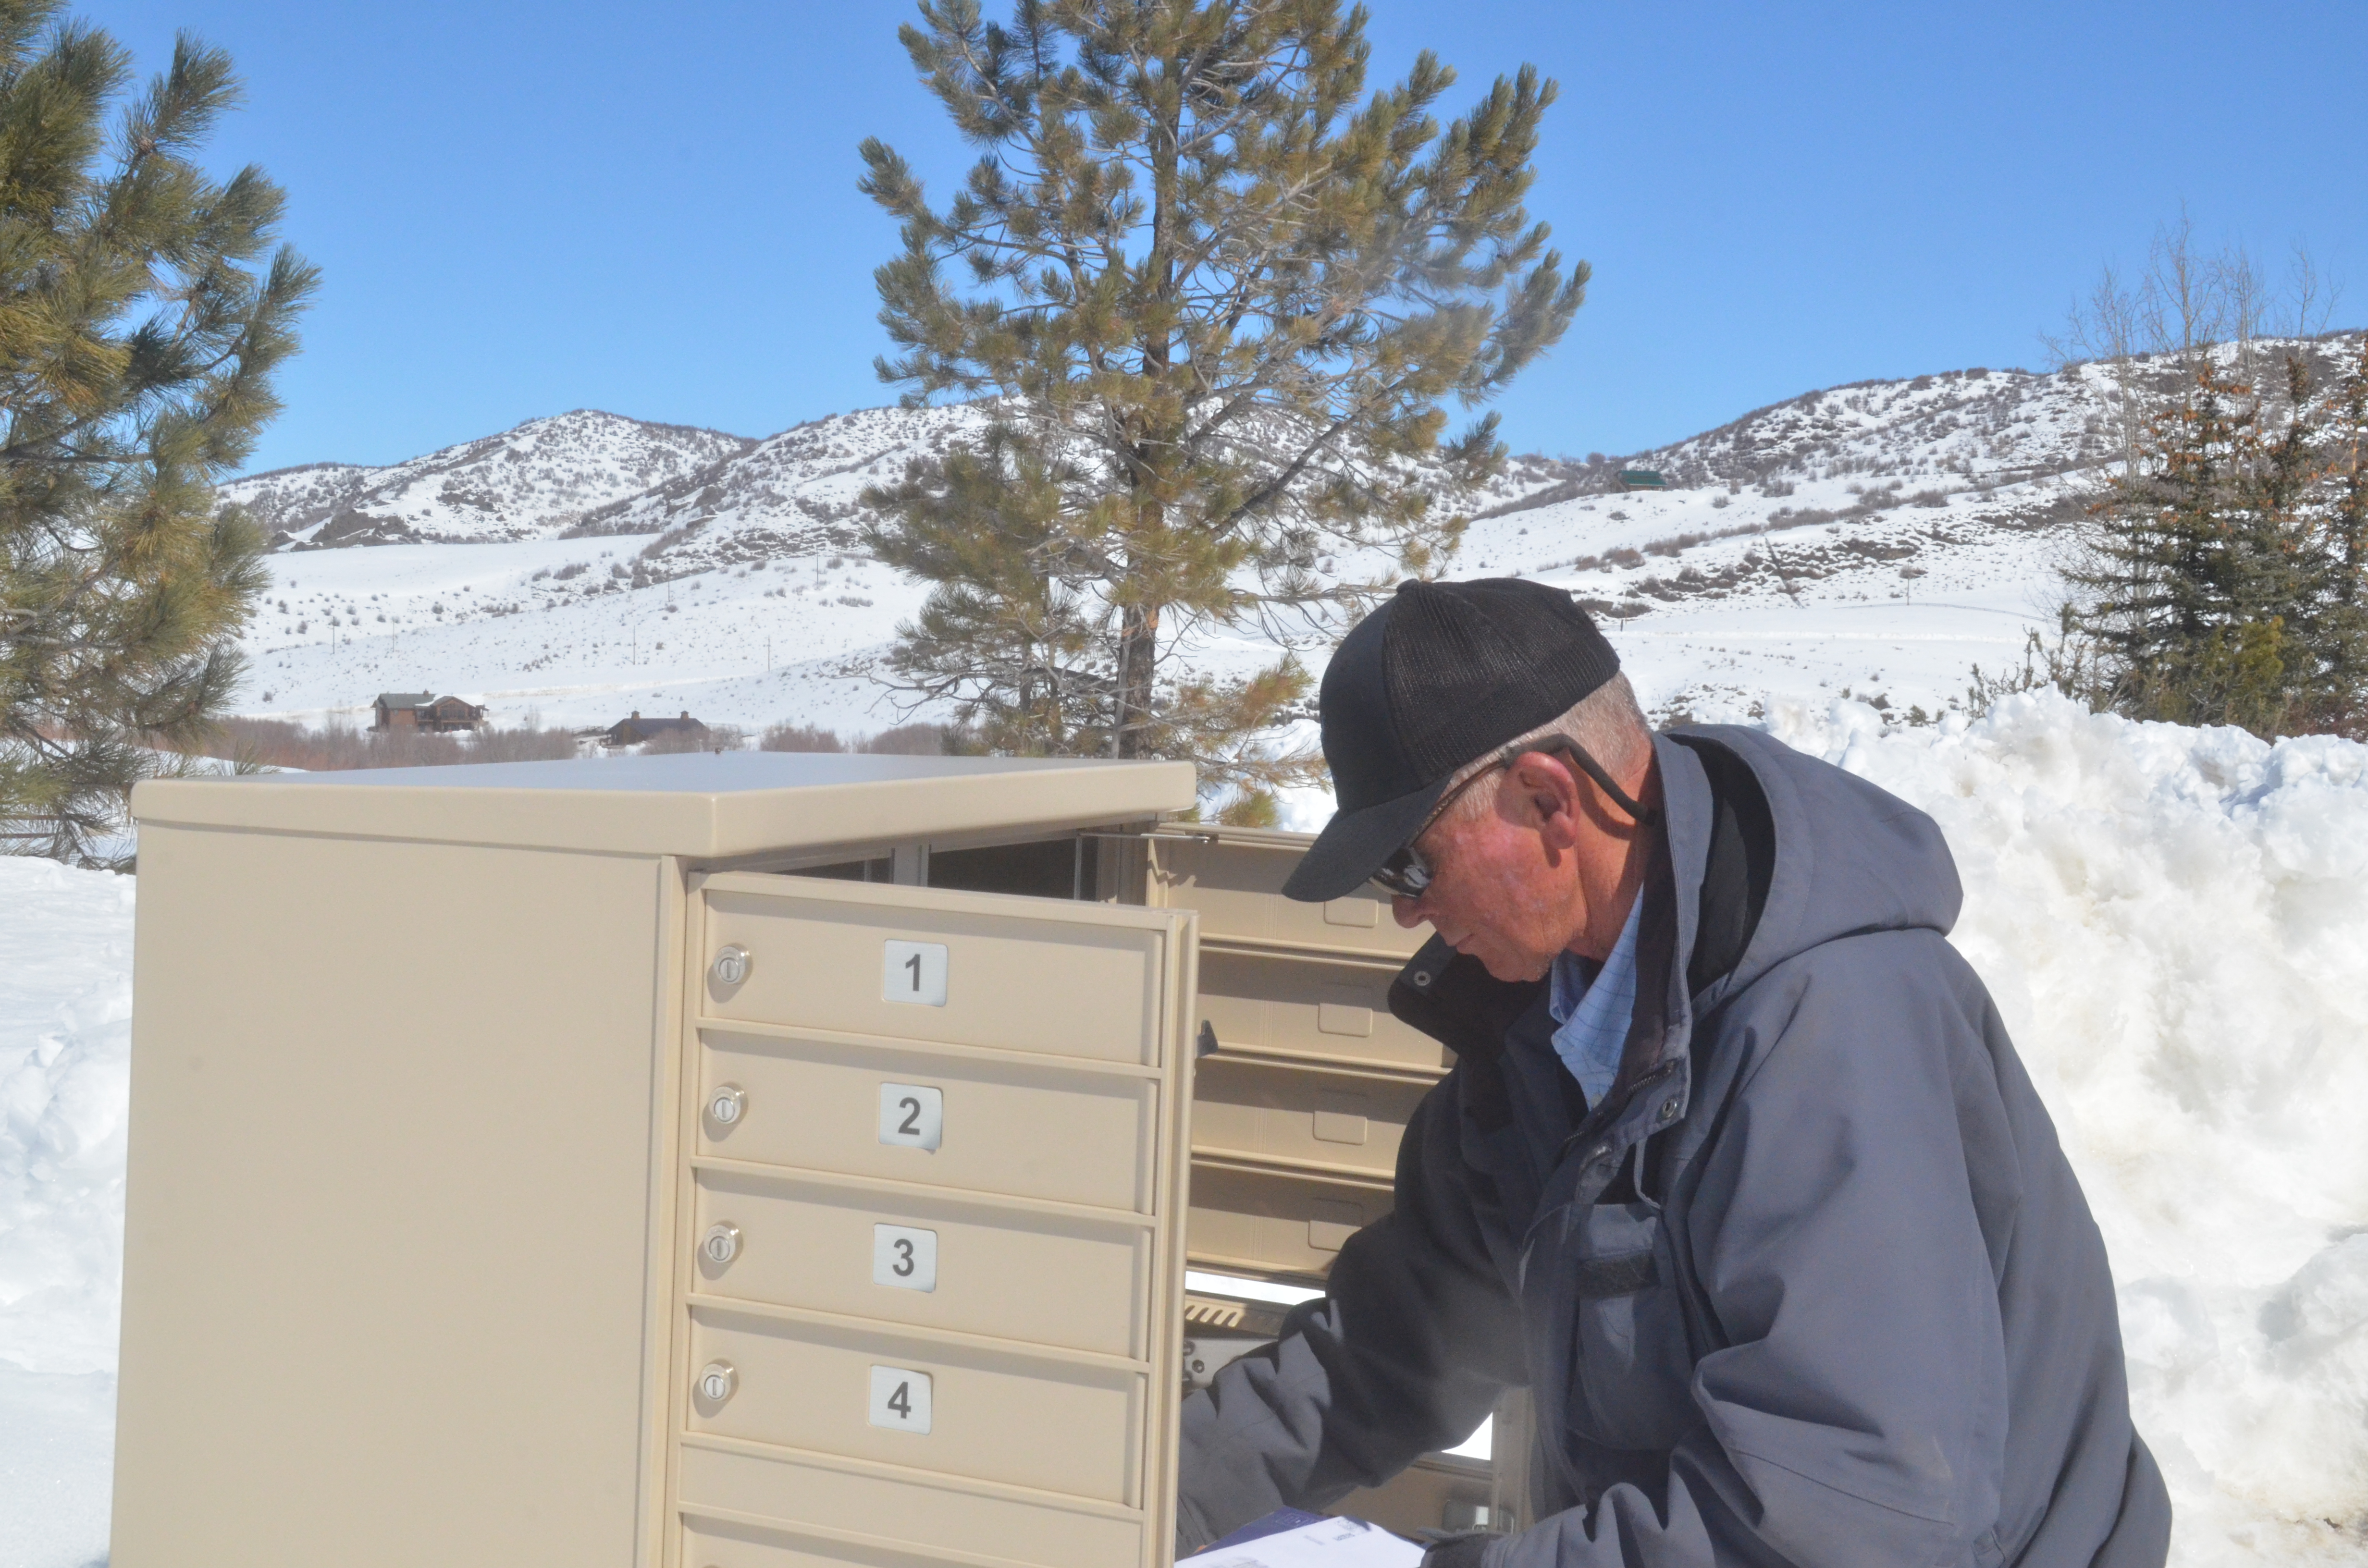 Oak Creek mail carrier to retire after 33 years of whiteouts